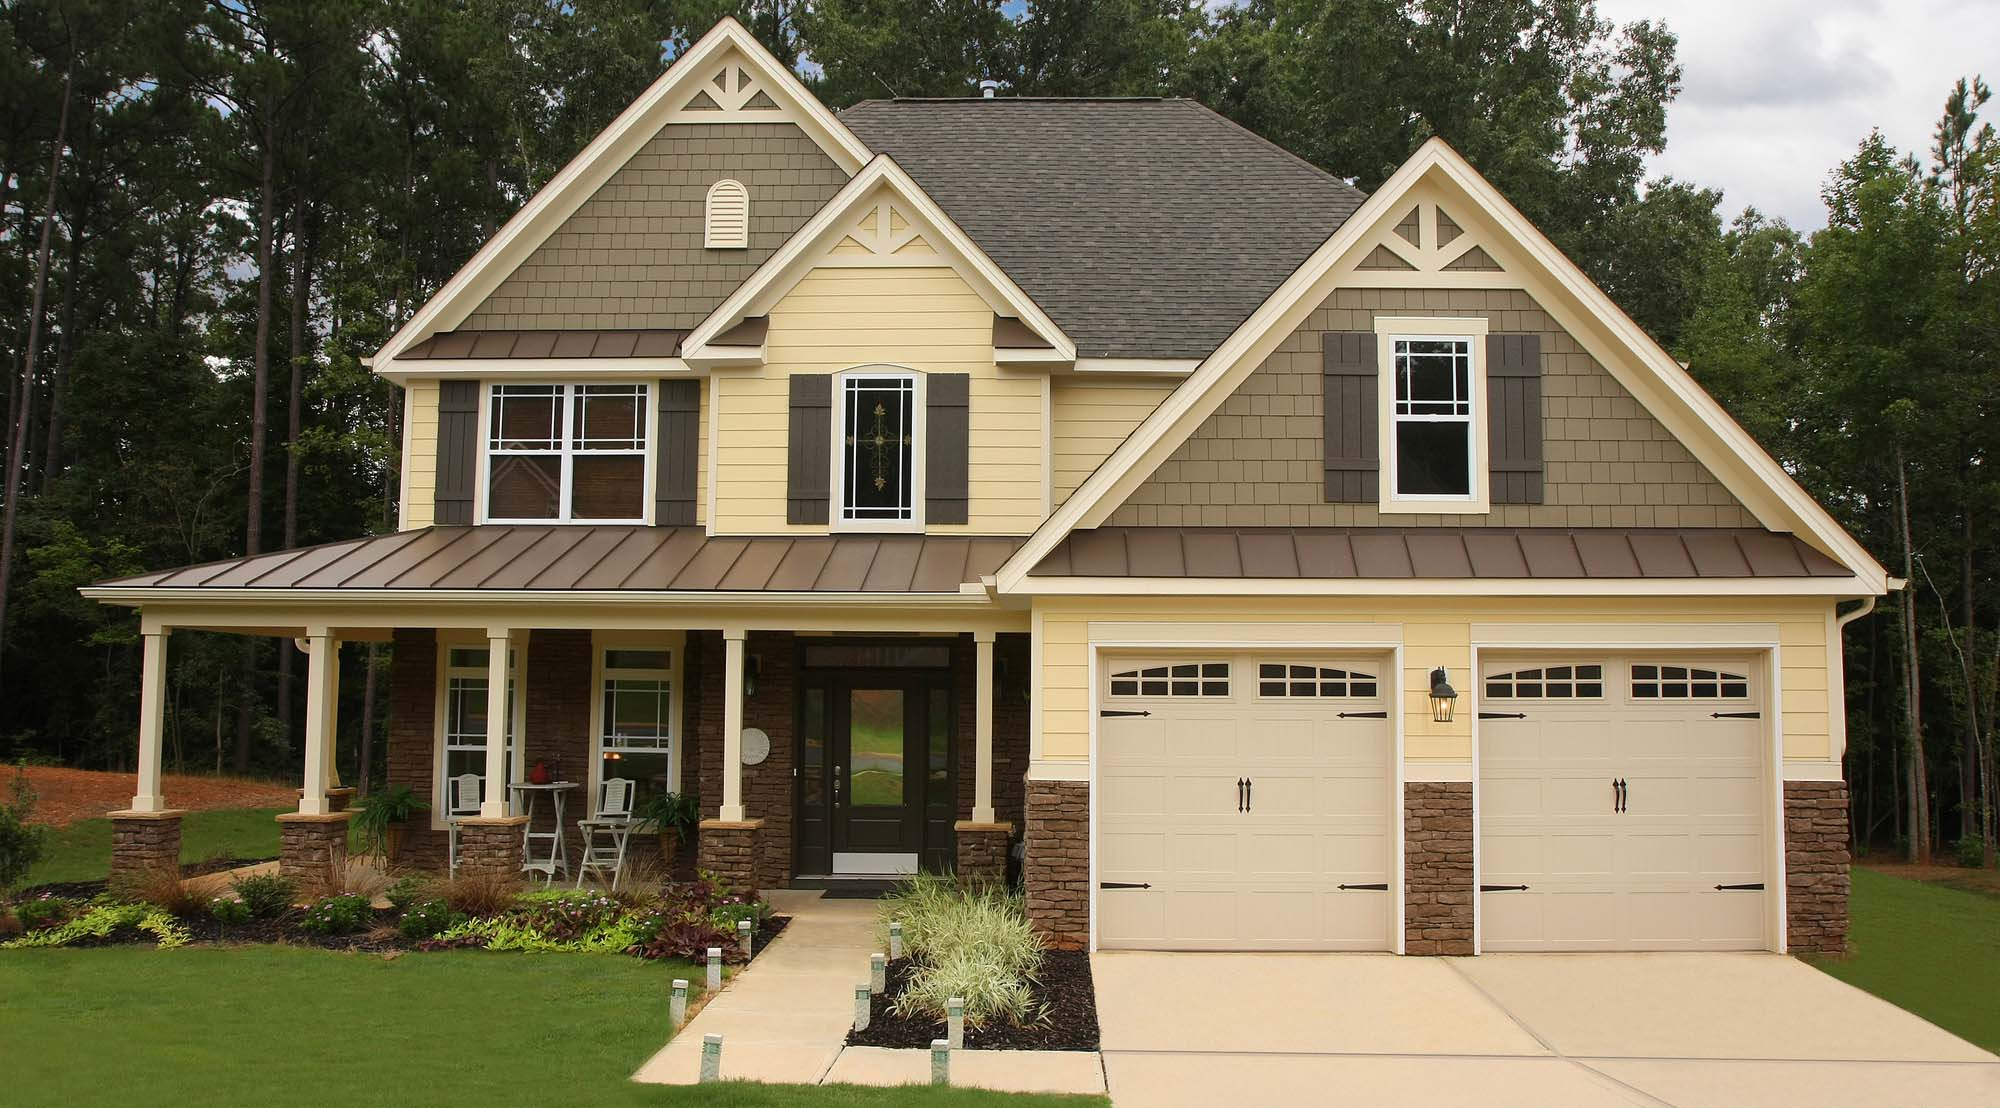 Two toned gray and pale yellow siding color combination. White trim and columns. Black roofing shingles with a brown metal accent roofline. White garage doors. Dark brown stained front door. Brown stone veneer. Gray shutters.